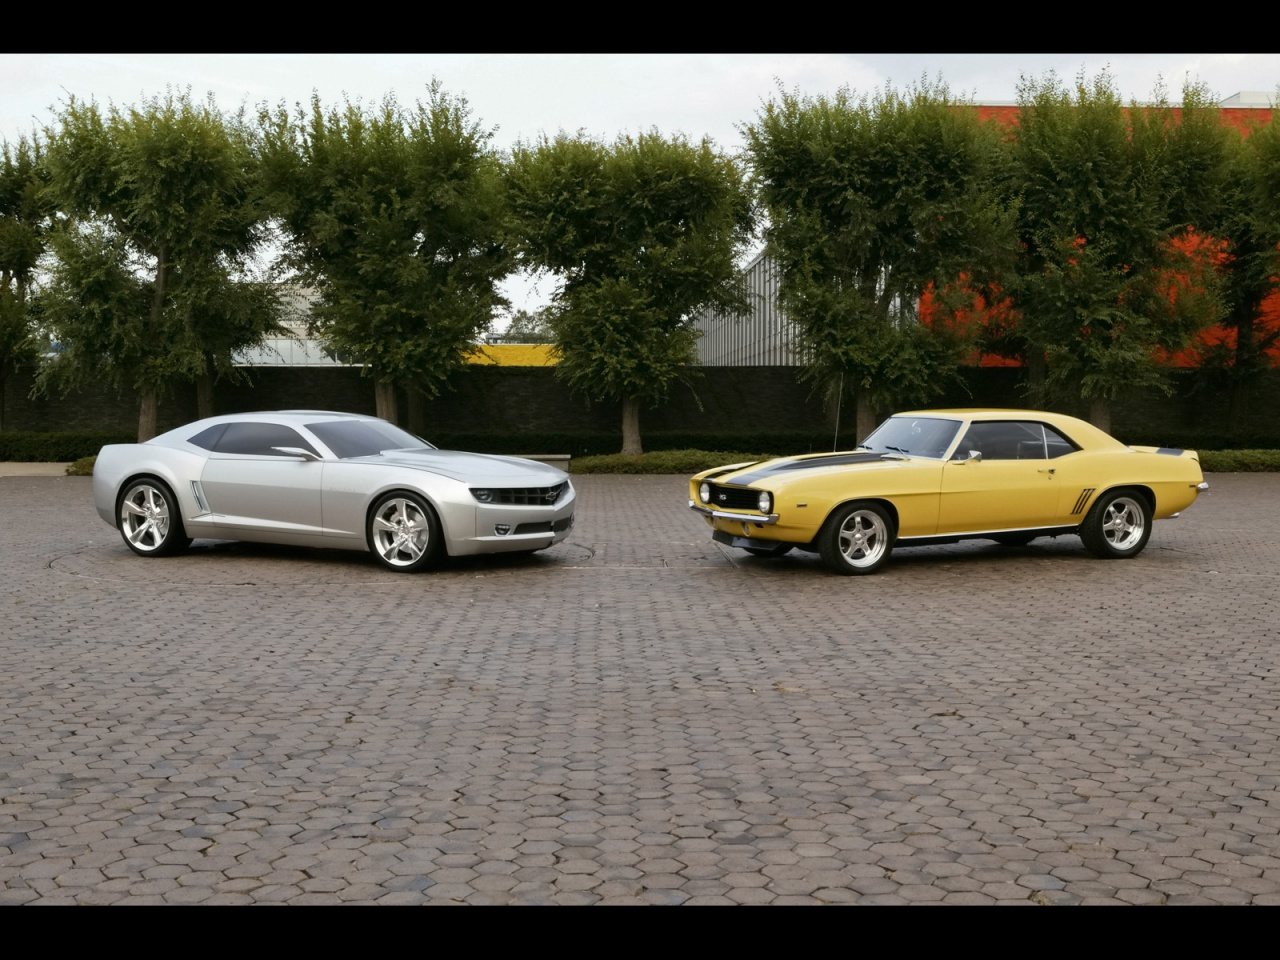 Chevrolet Camaro Fan Club - old vs new wallpapers 11968 1280x960